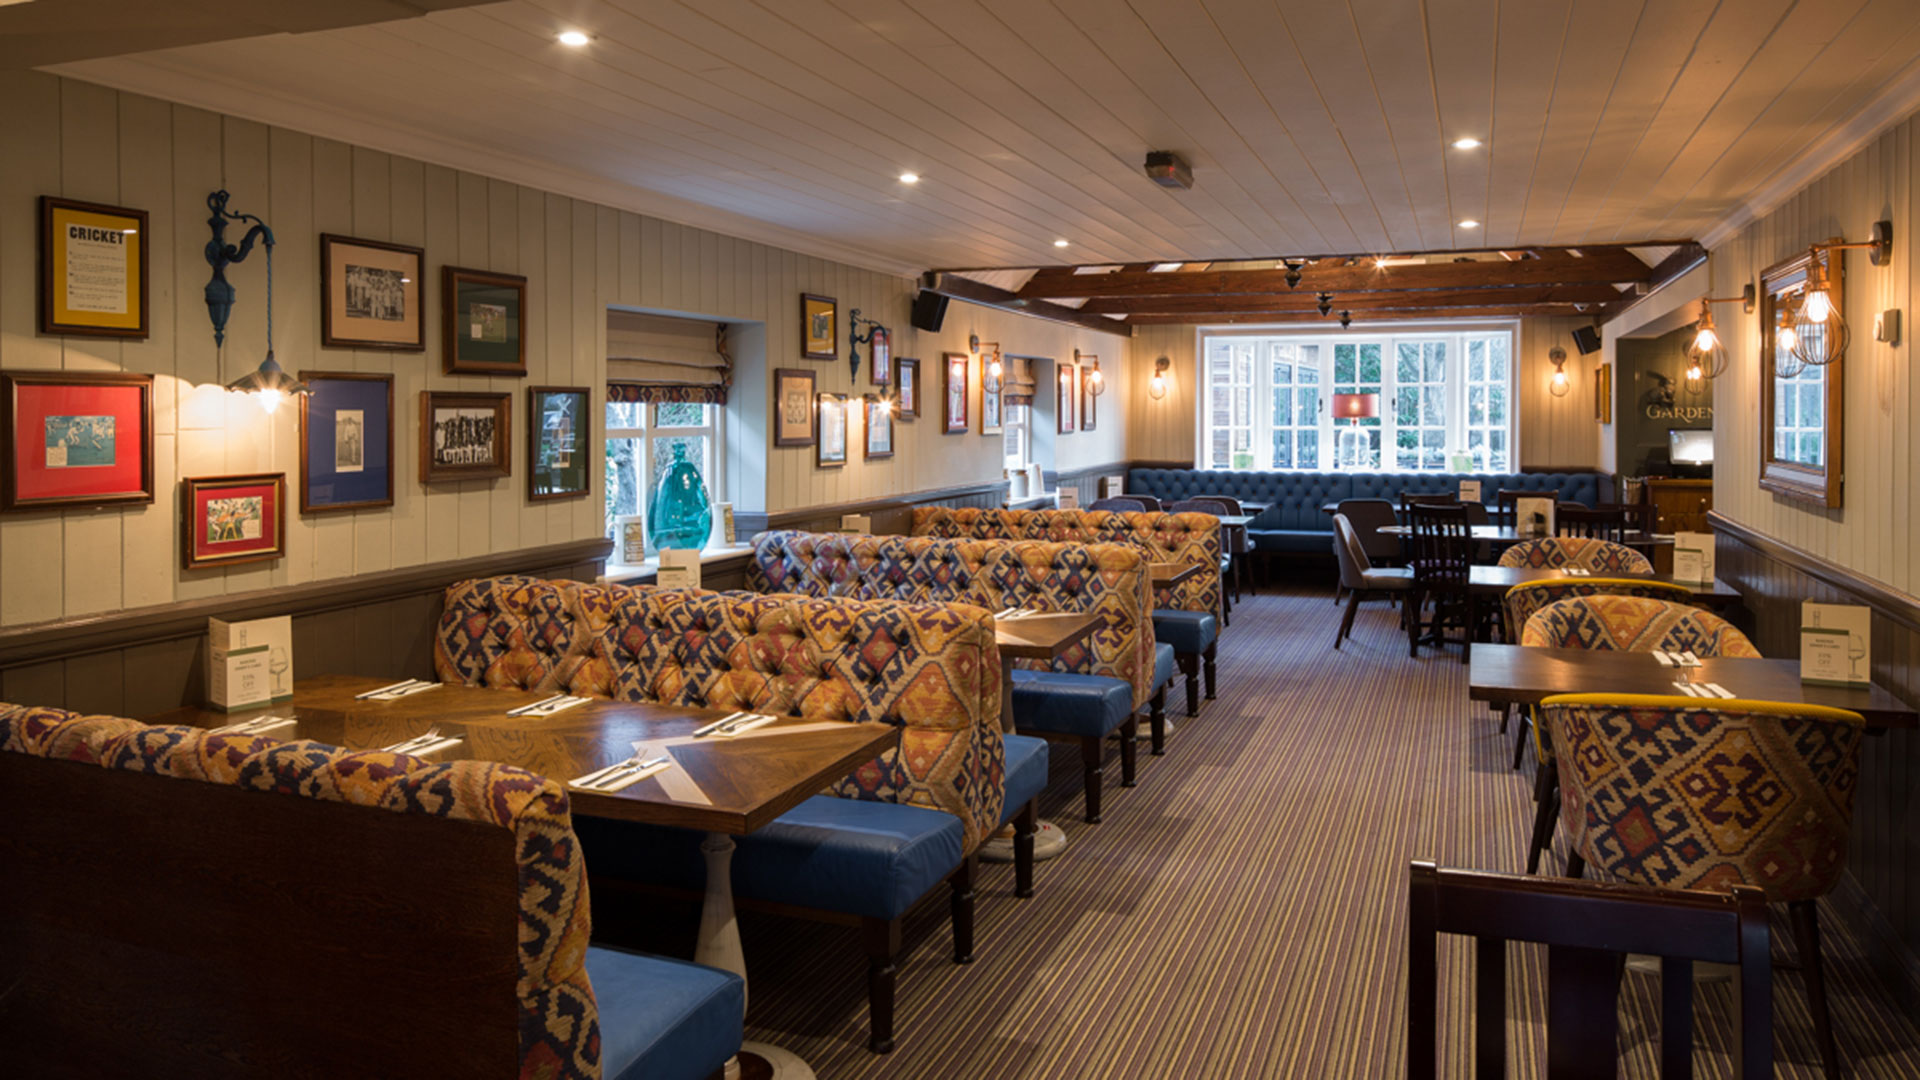 Photo of The Cricketers Interior